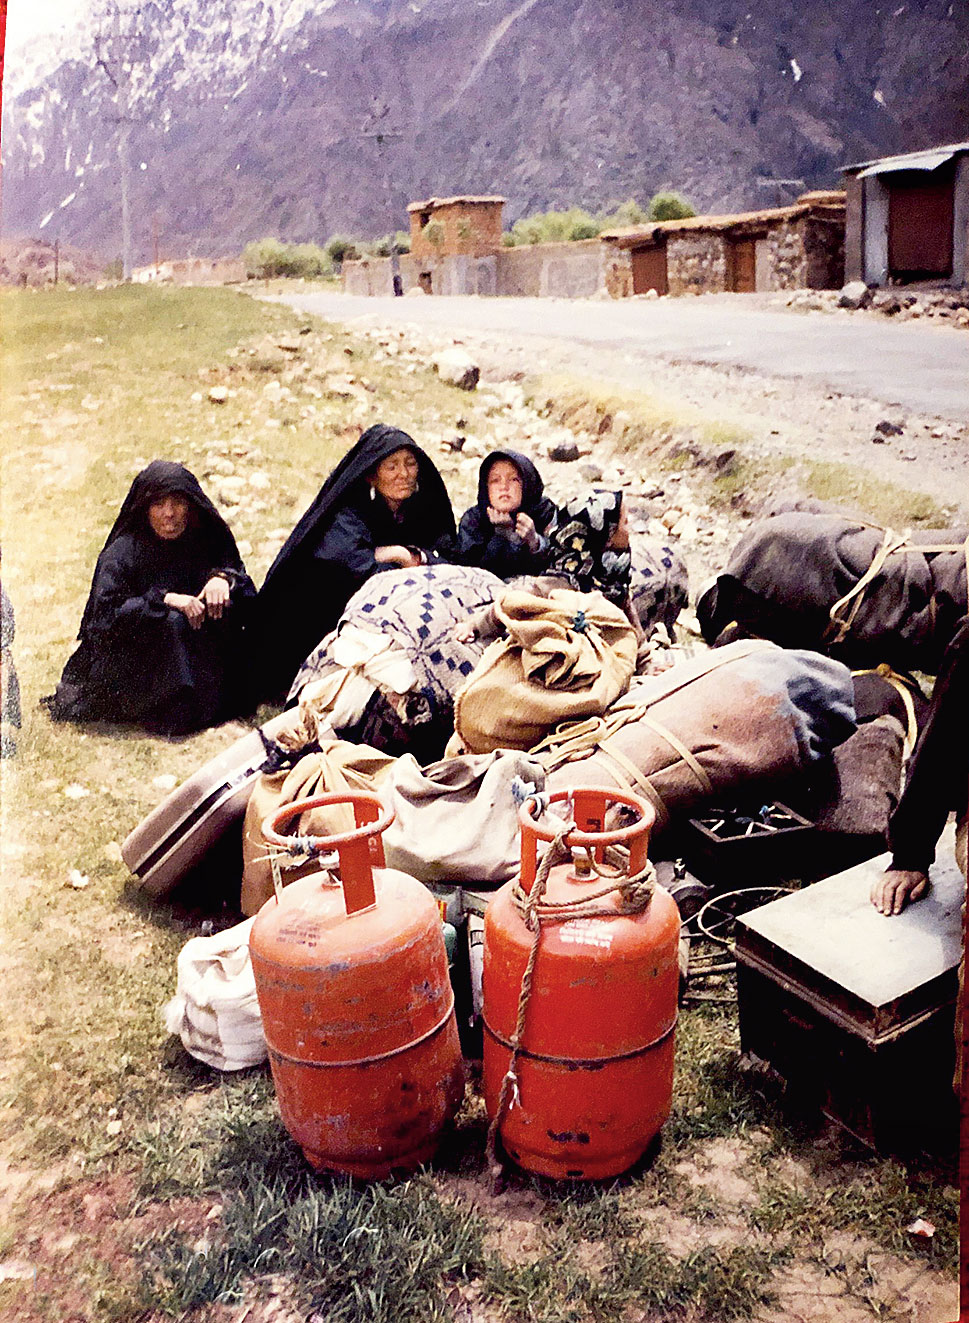 Kargil reports from 1999: War-time price for 3kg of rice